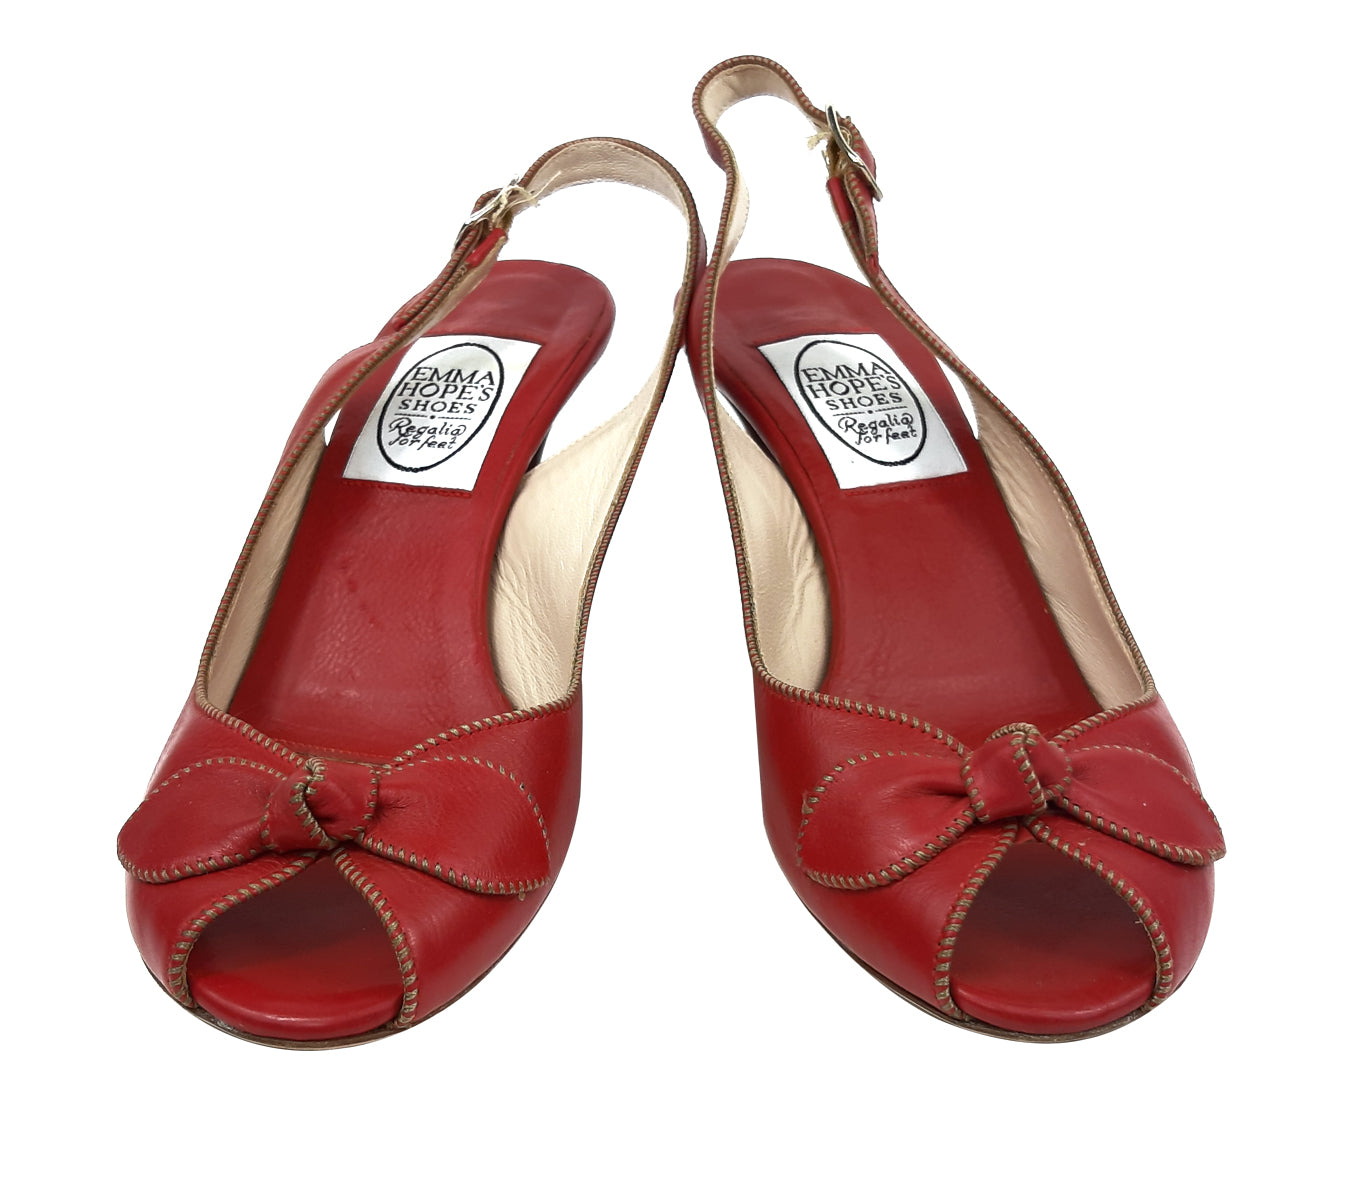 Emma Hopes Leather Red Shoes with Bow Detail Size 37,5 (EU)